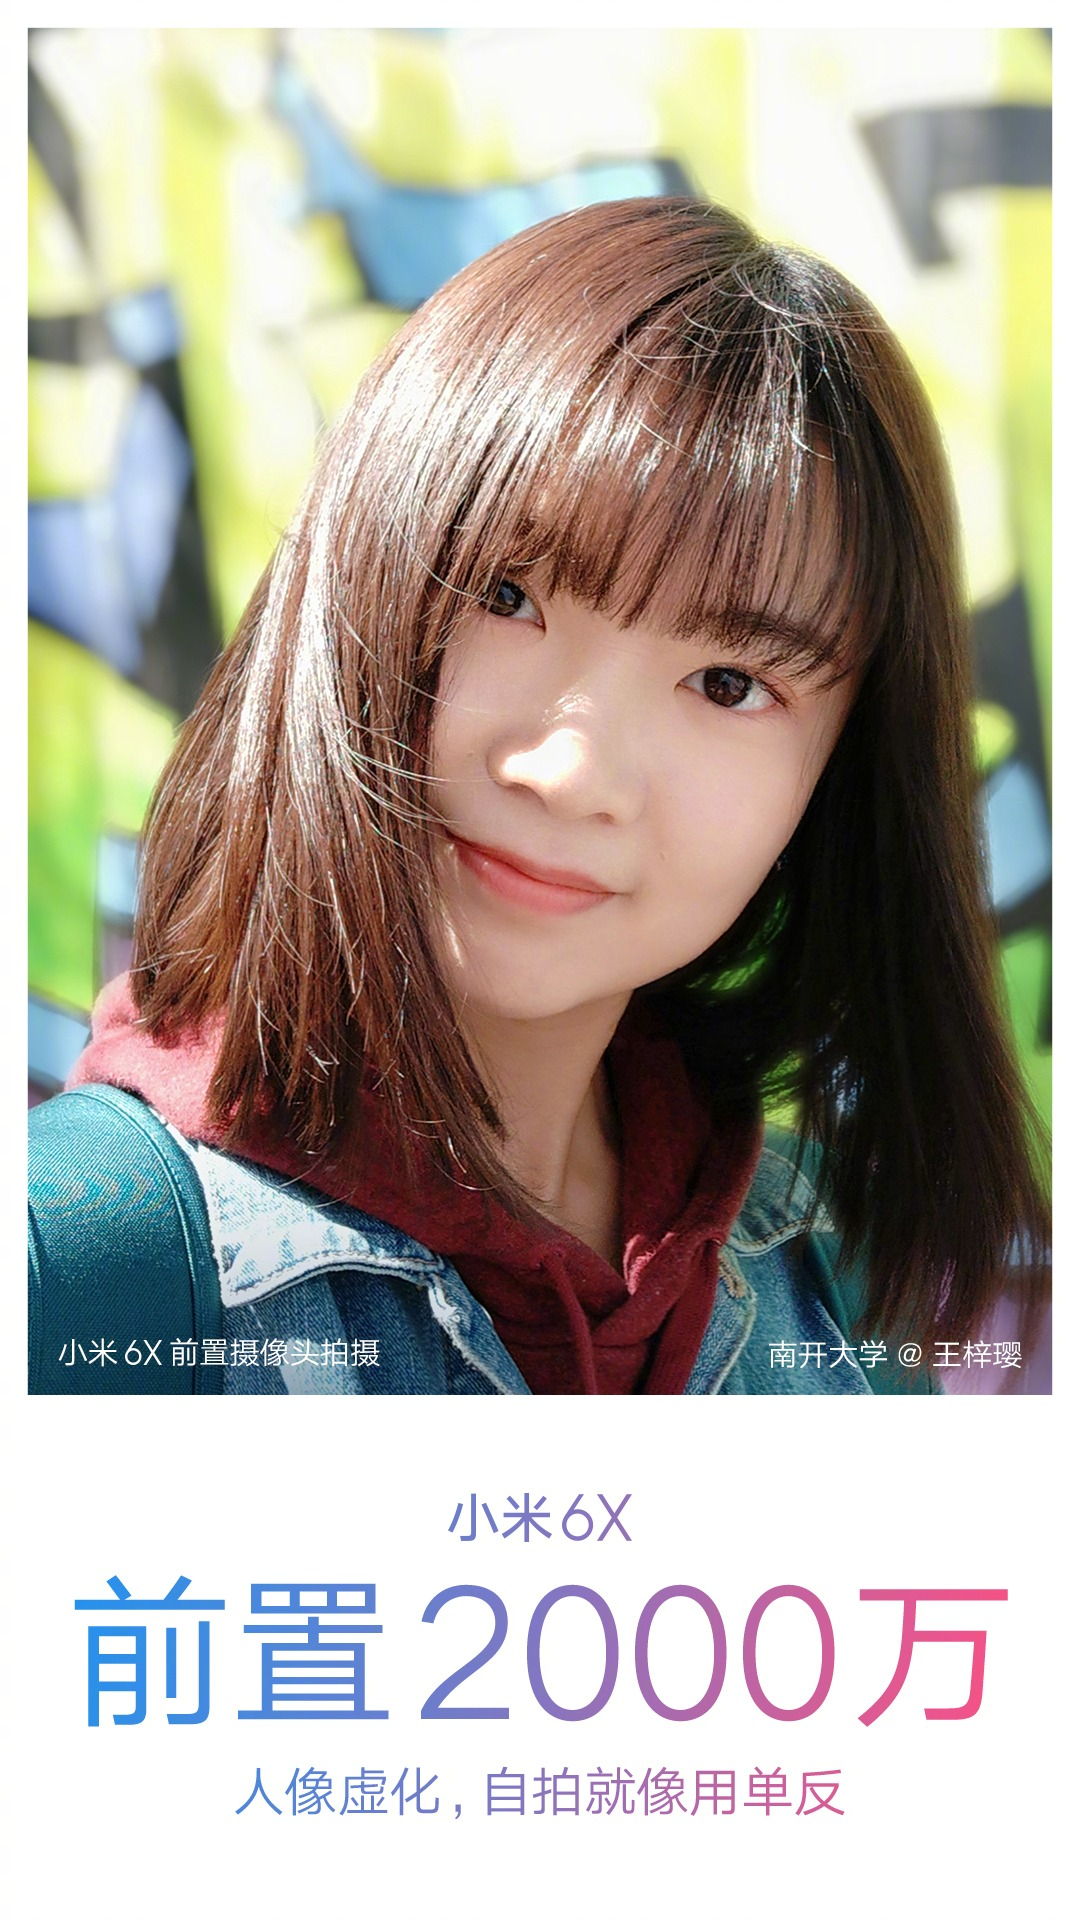 Check out these latest Xiaomi Mi 6X Camera Samples 20